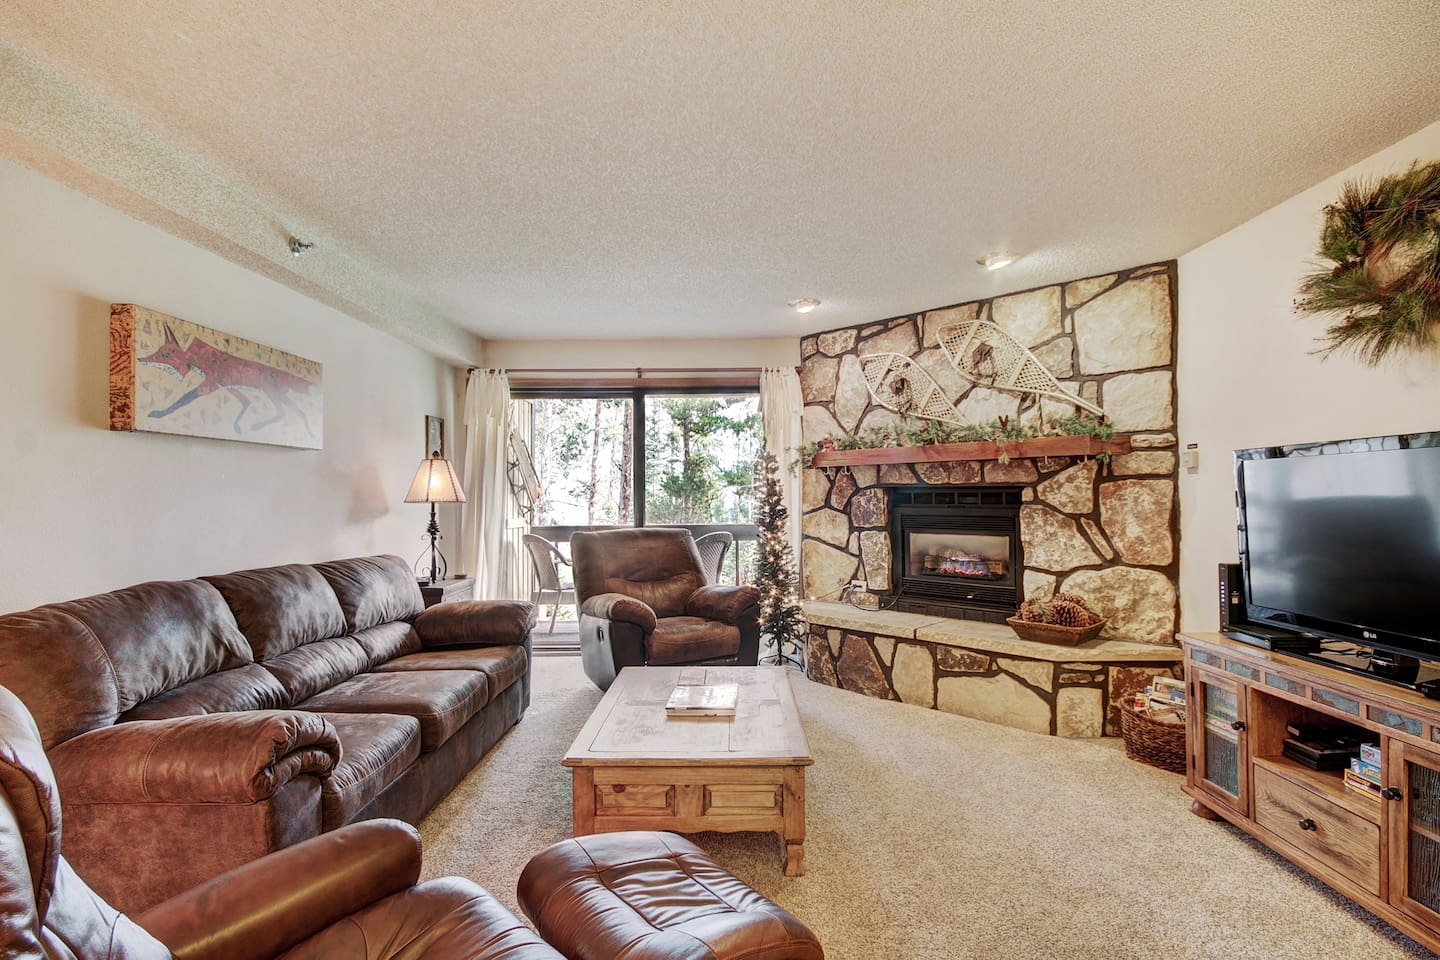 For comfort, convenience and affordability look no further than the Atrium condos in Breckenridge